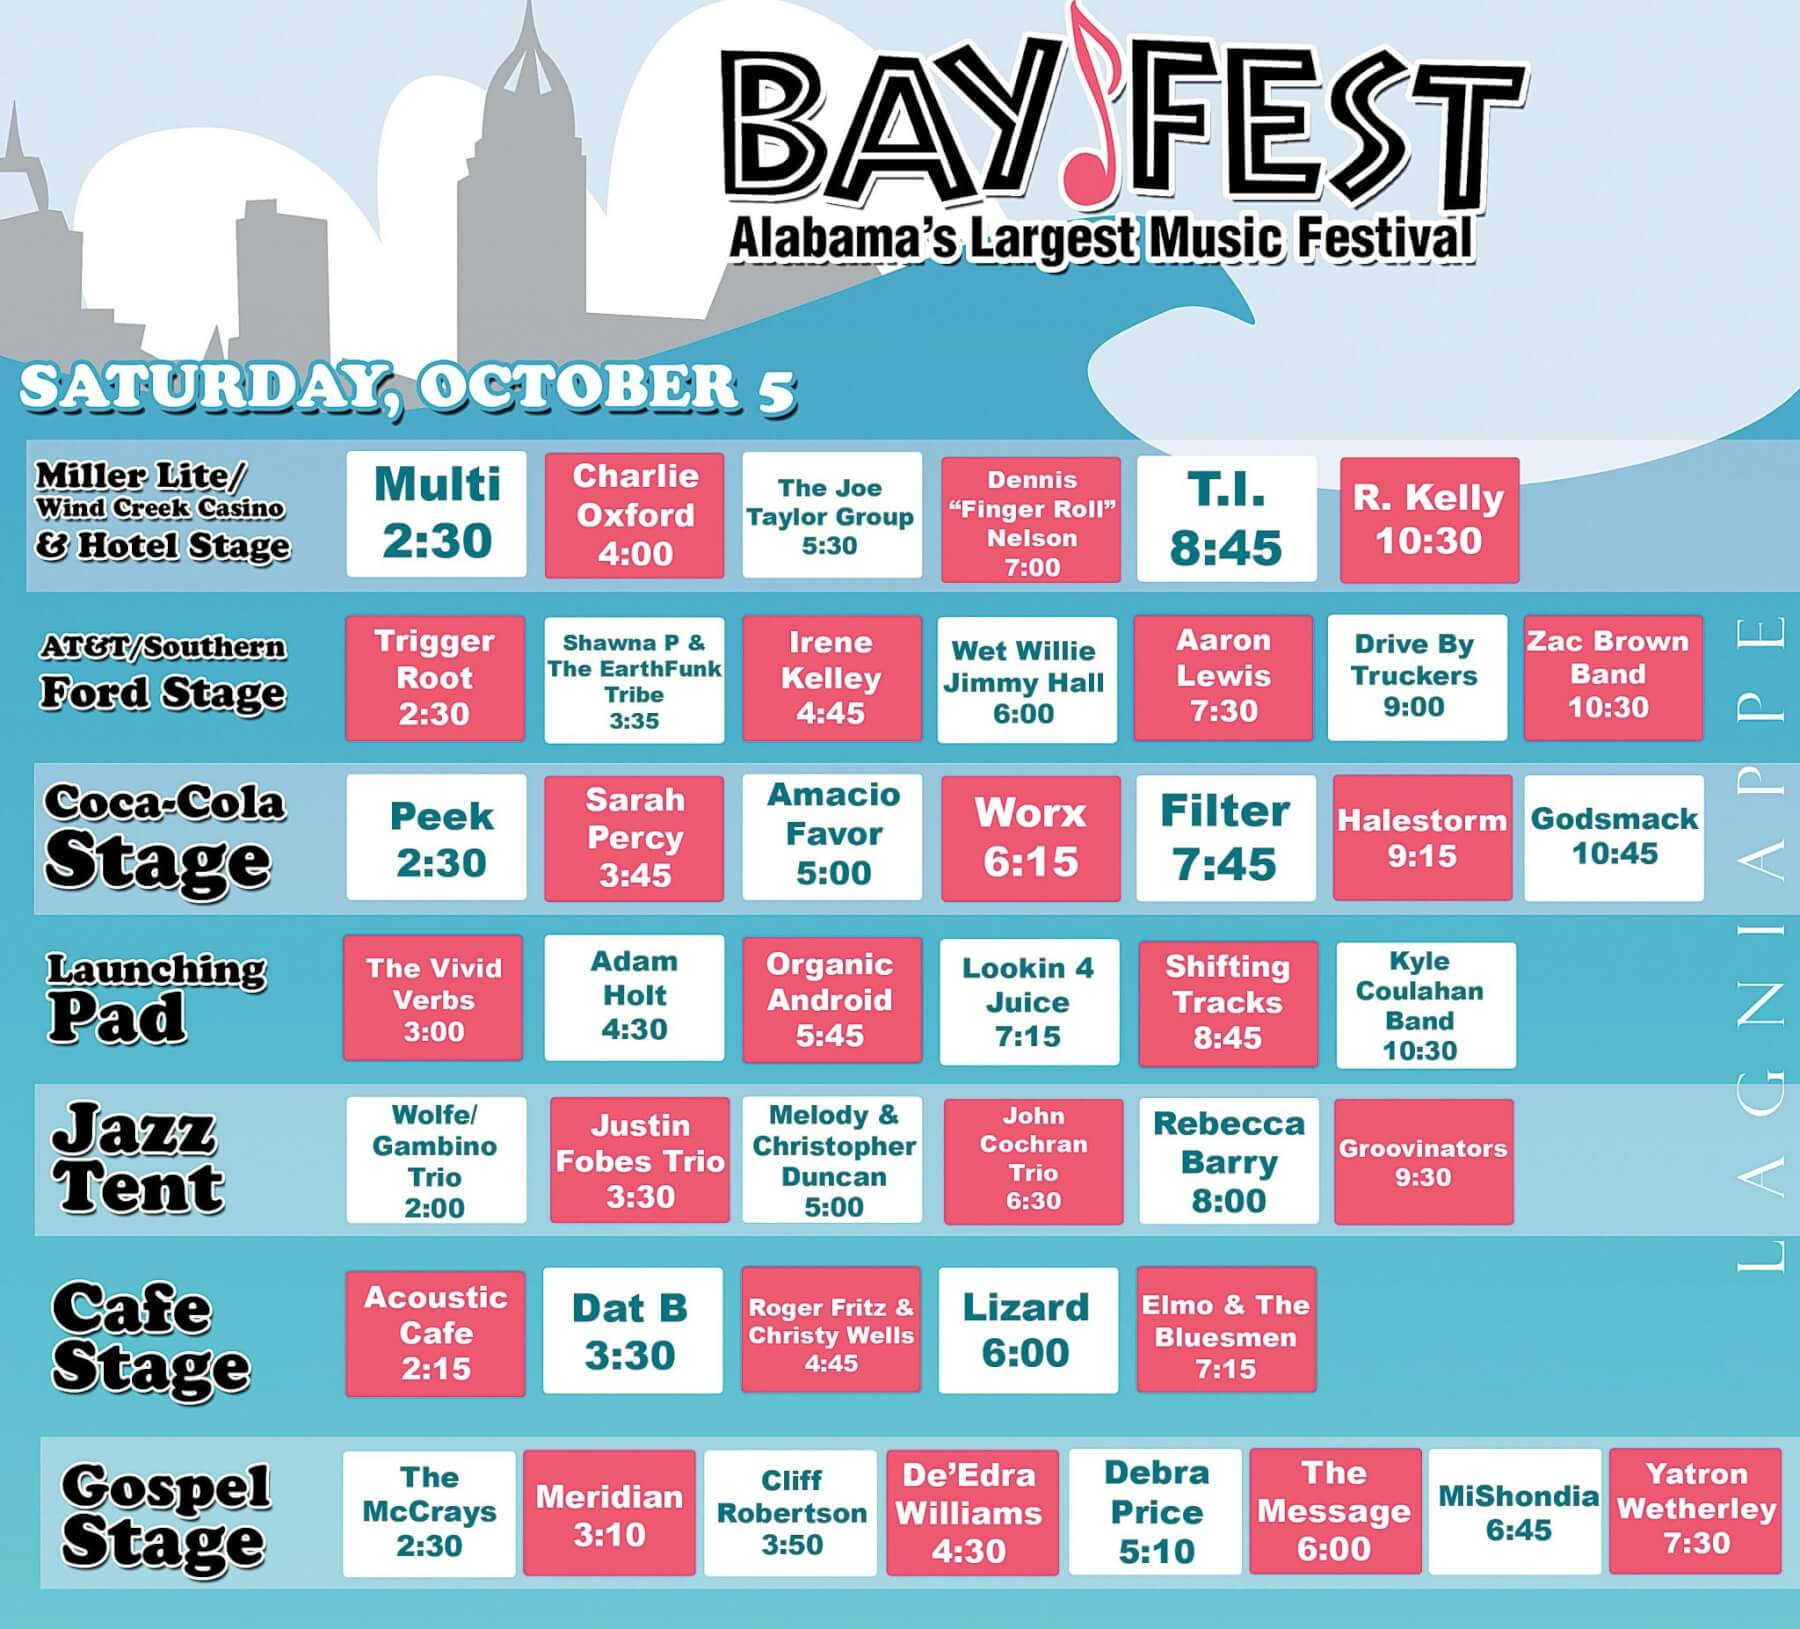 Bayfest band bios and schedule, Saturday, Oct. 5 (UPDATED)